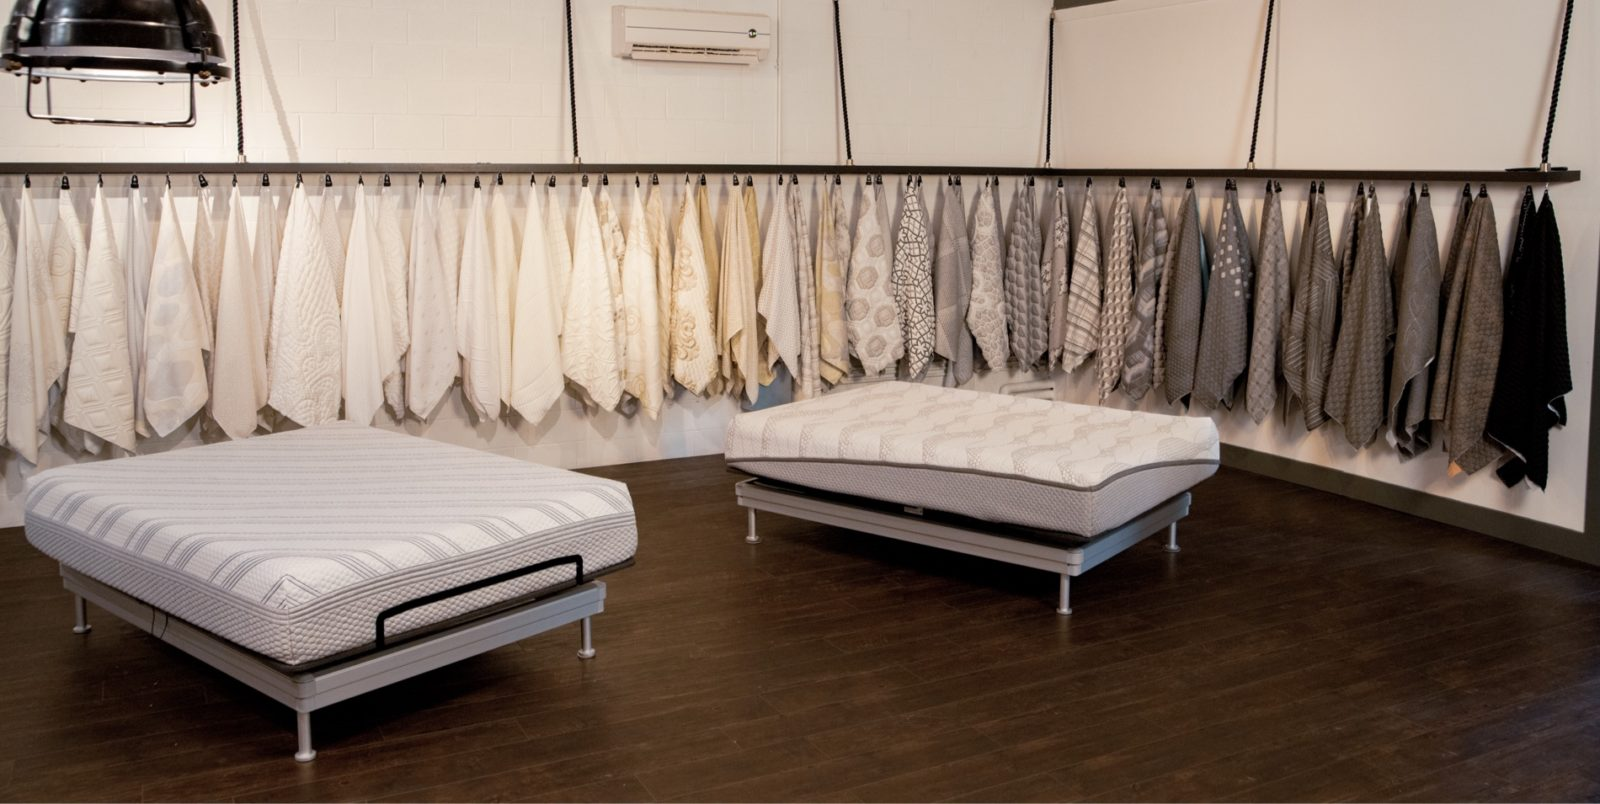 Innofa fabric showroom with two mattress covers in the middle